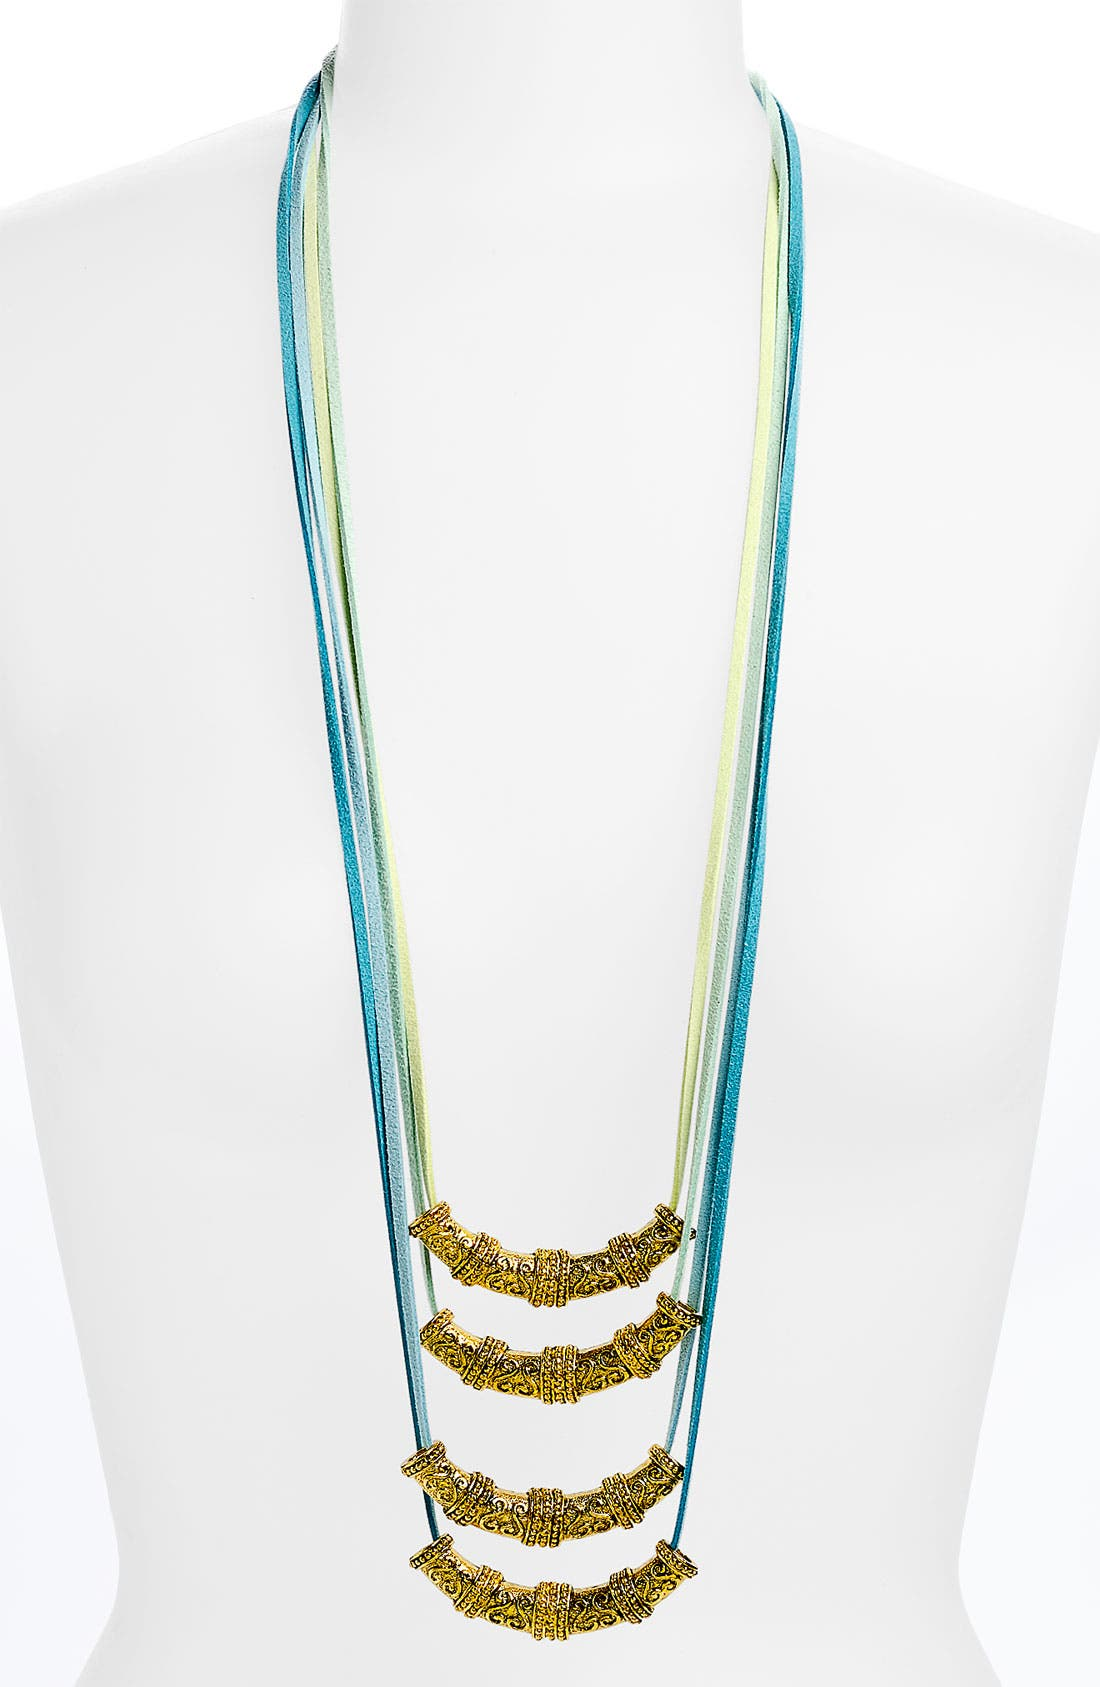 Main Image - Micha Design Long Tube Bead Necklace